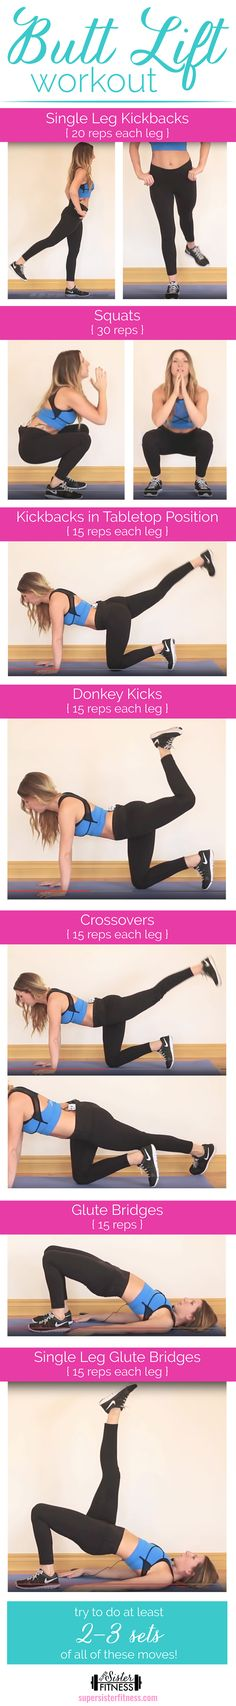 10 Lazy girl butt-shaping exercises that are so easy to try. 10 Super easy lazy girl butt-shaping exercises that can give you a beautiful Brazilian butt Full Body Workouts, Fitness Workouts, Fitness Motivation, Lower Ab Workouts, Sport Fitness, At Home Workouts, Fitness Tips, Health Fitness, Butt Workouts